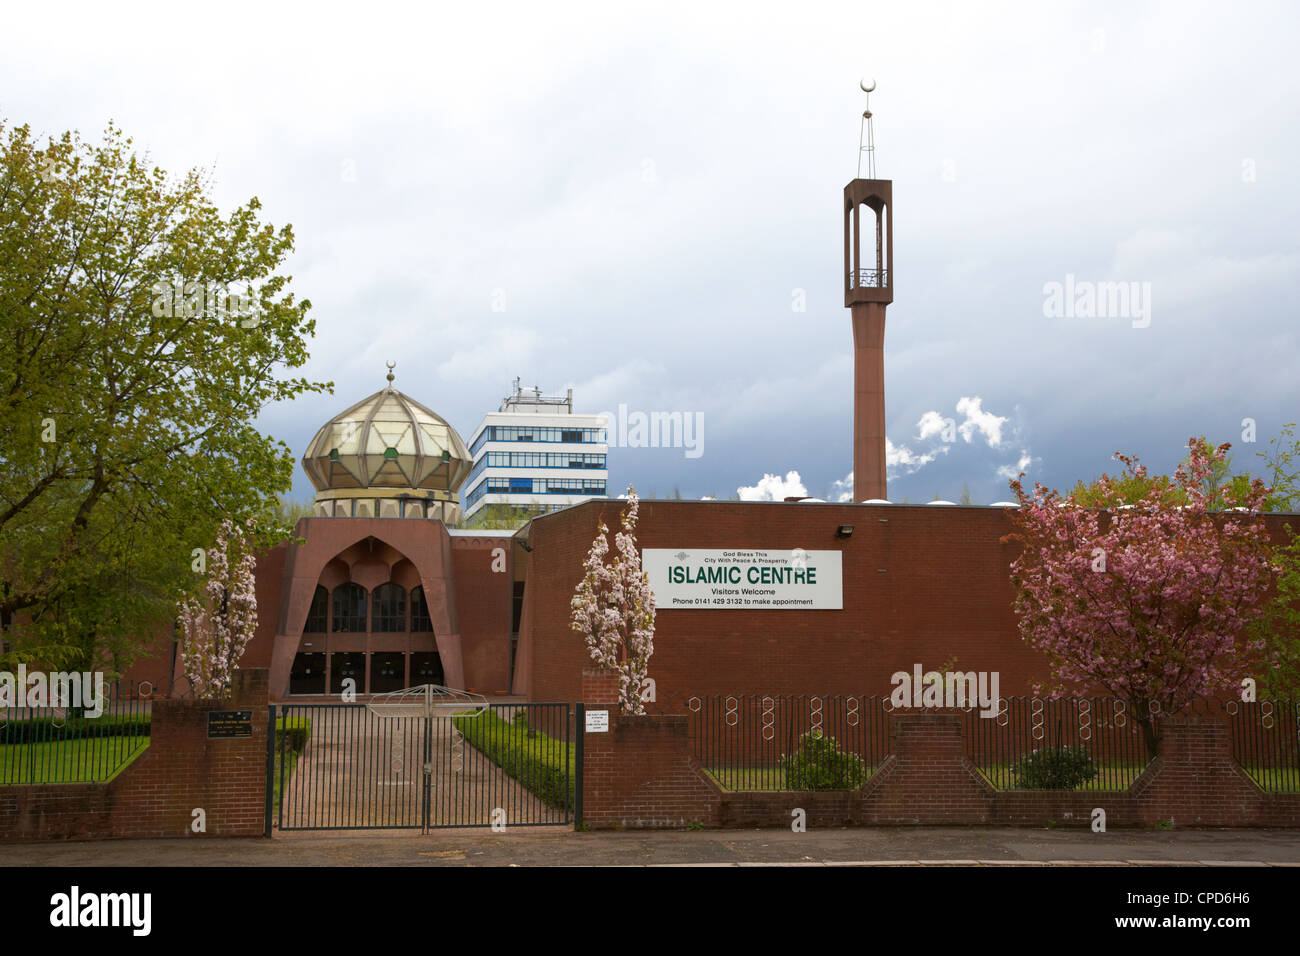 Glasgow islamic centre and central mosque Scotland UK - Stock Image